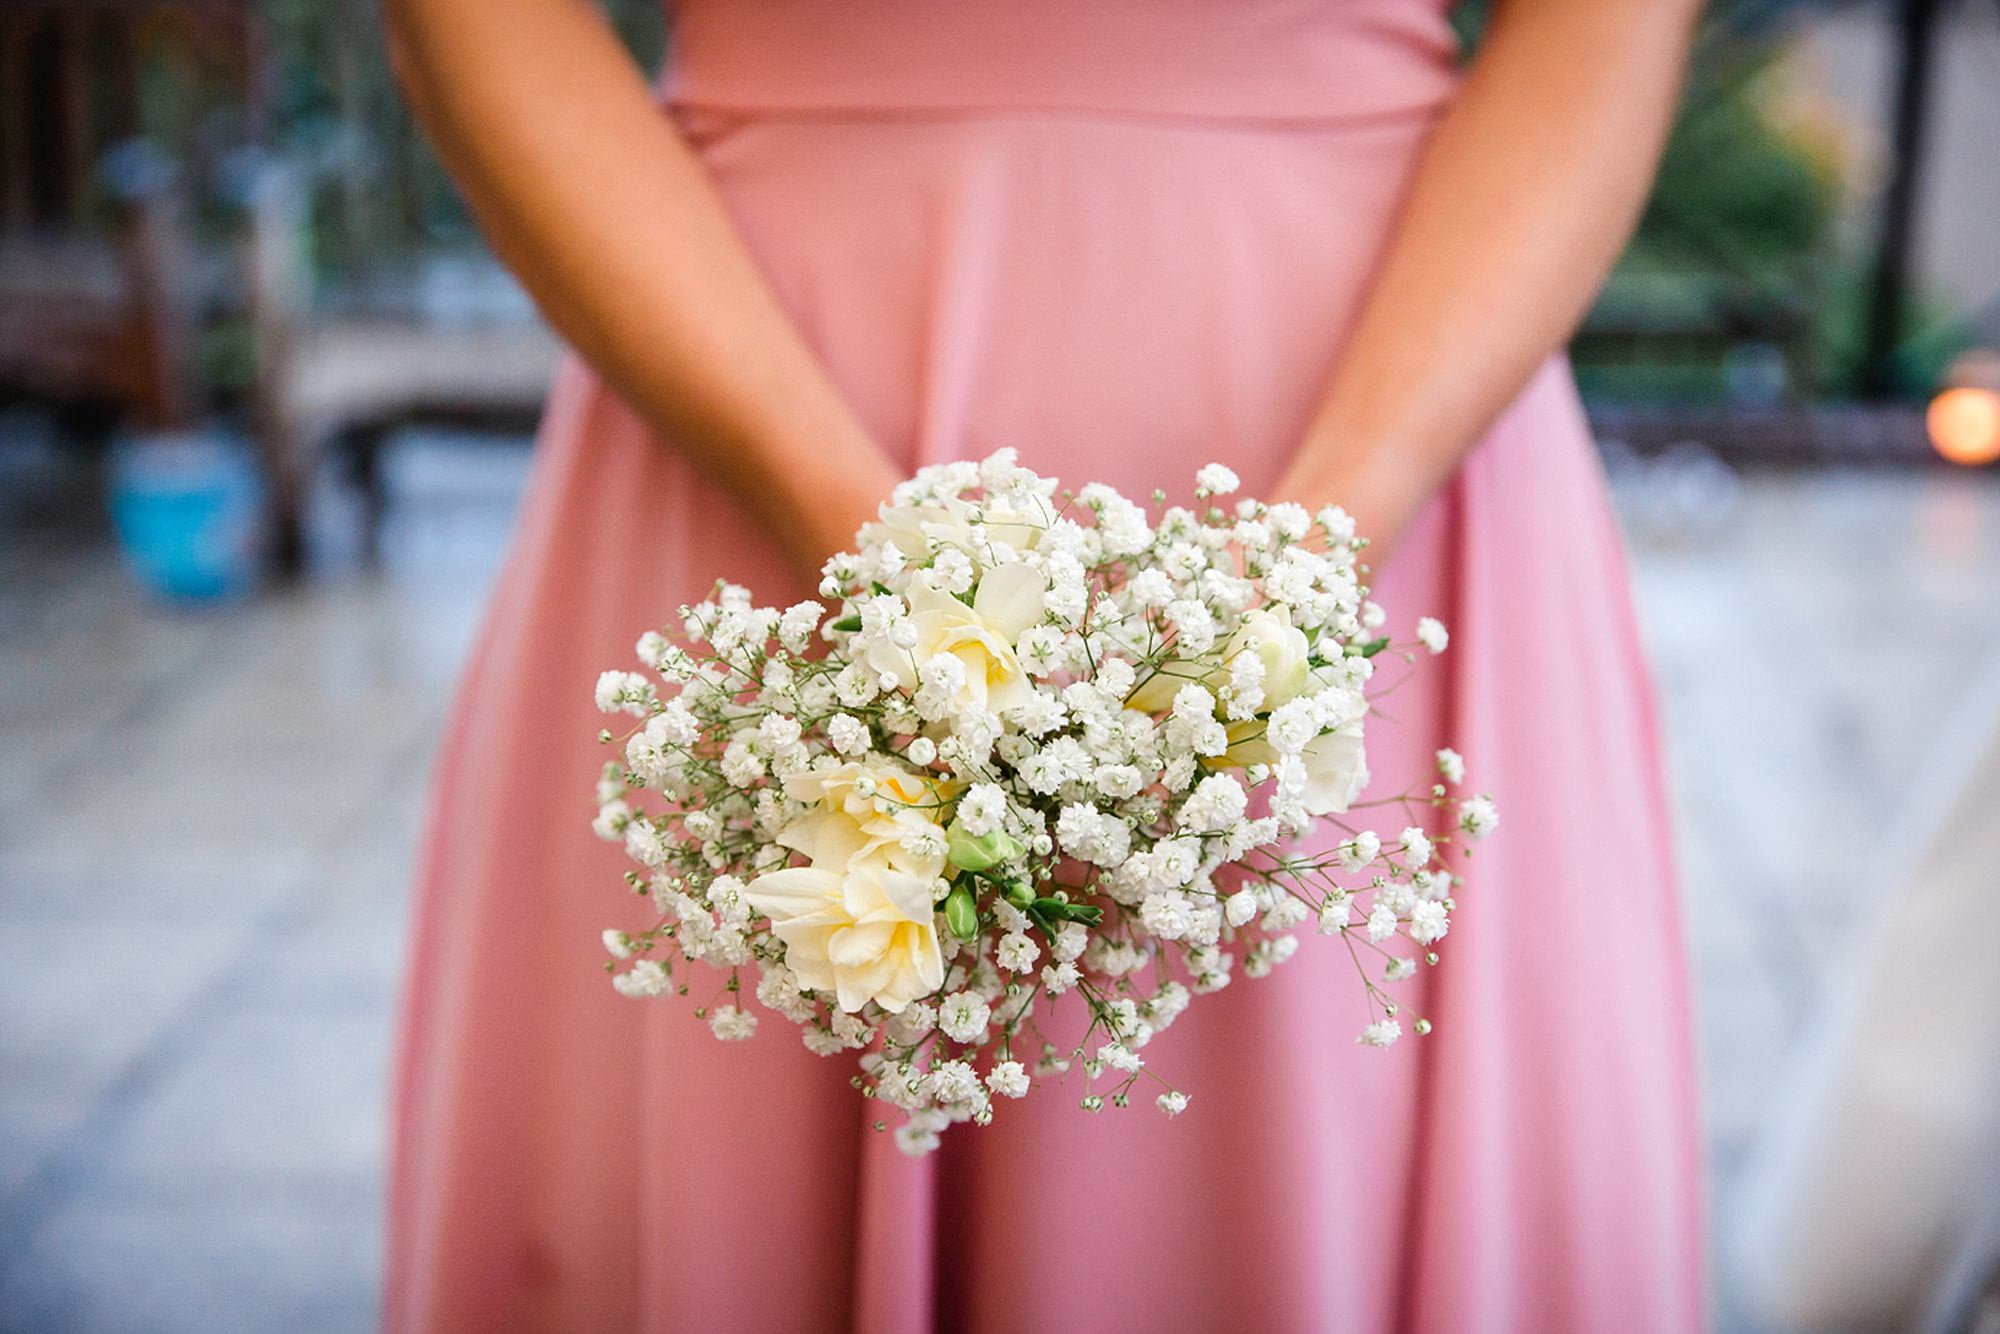 Marks Hall Estate wedding photography bridesmaids bouquet